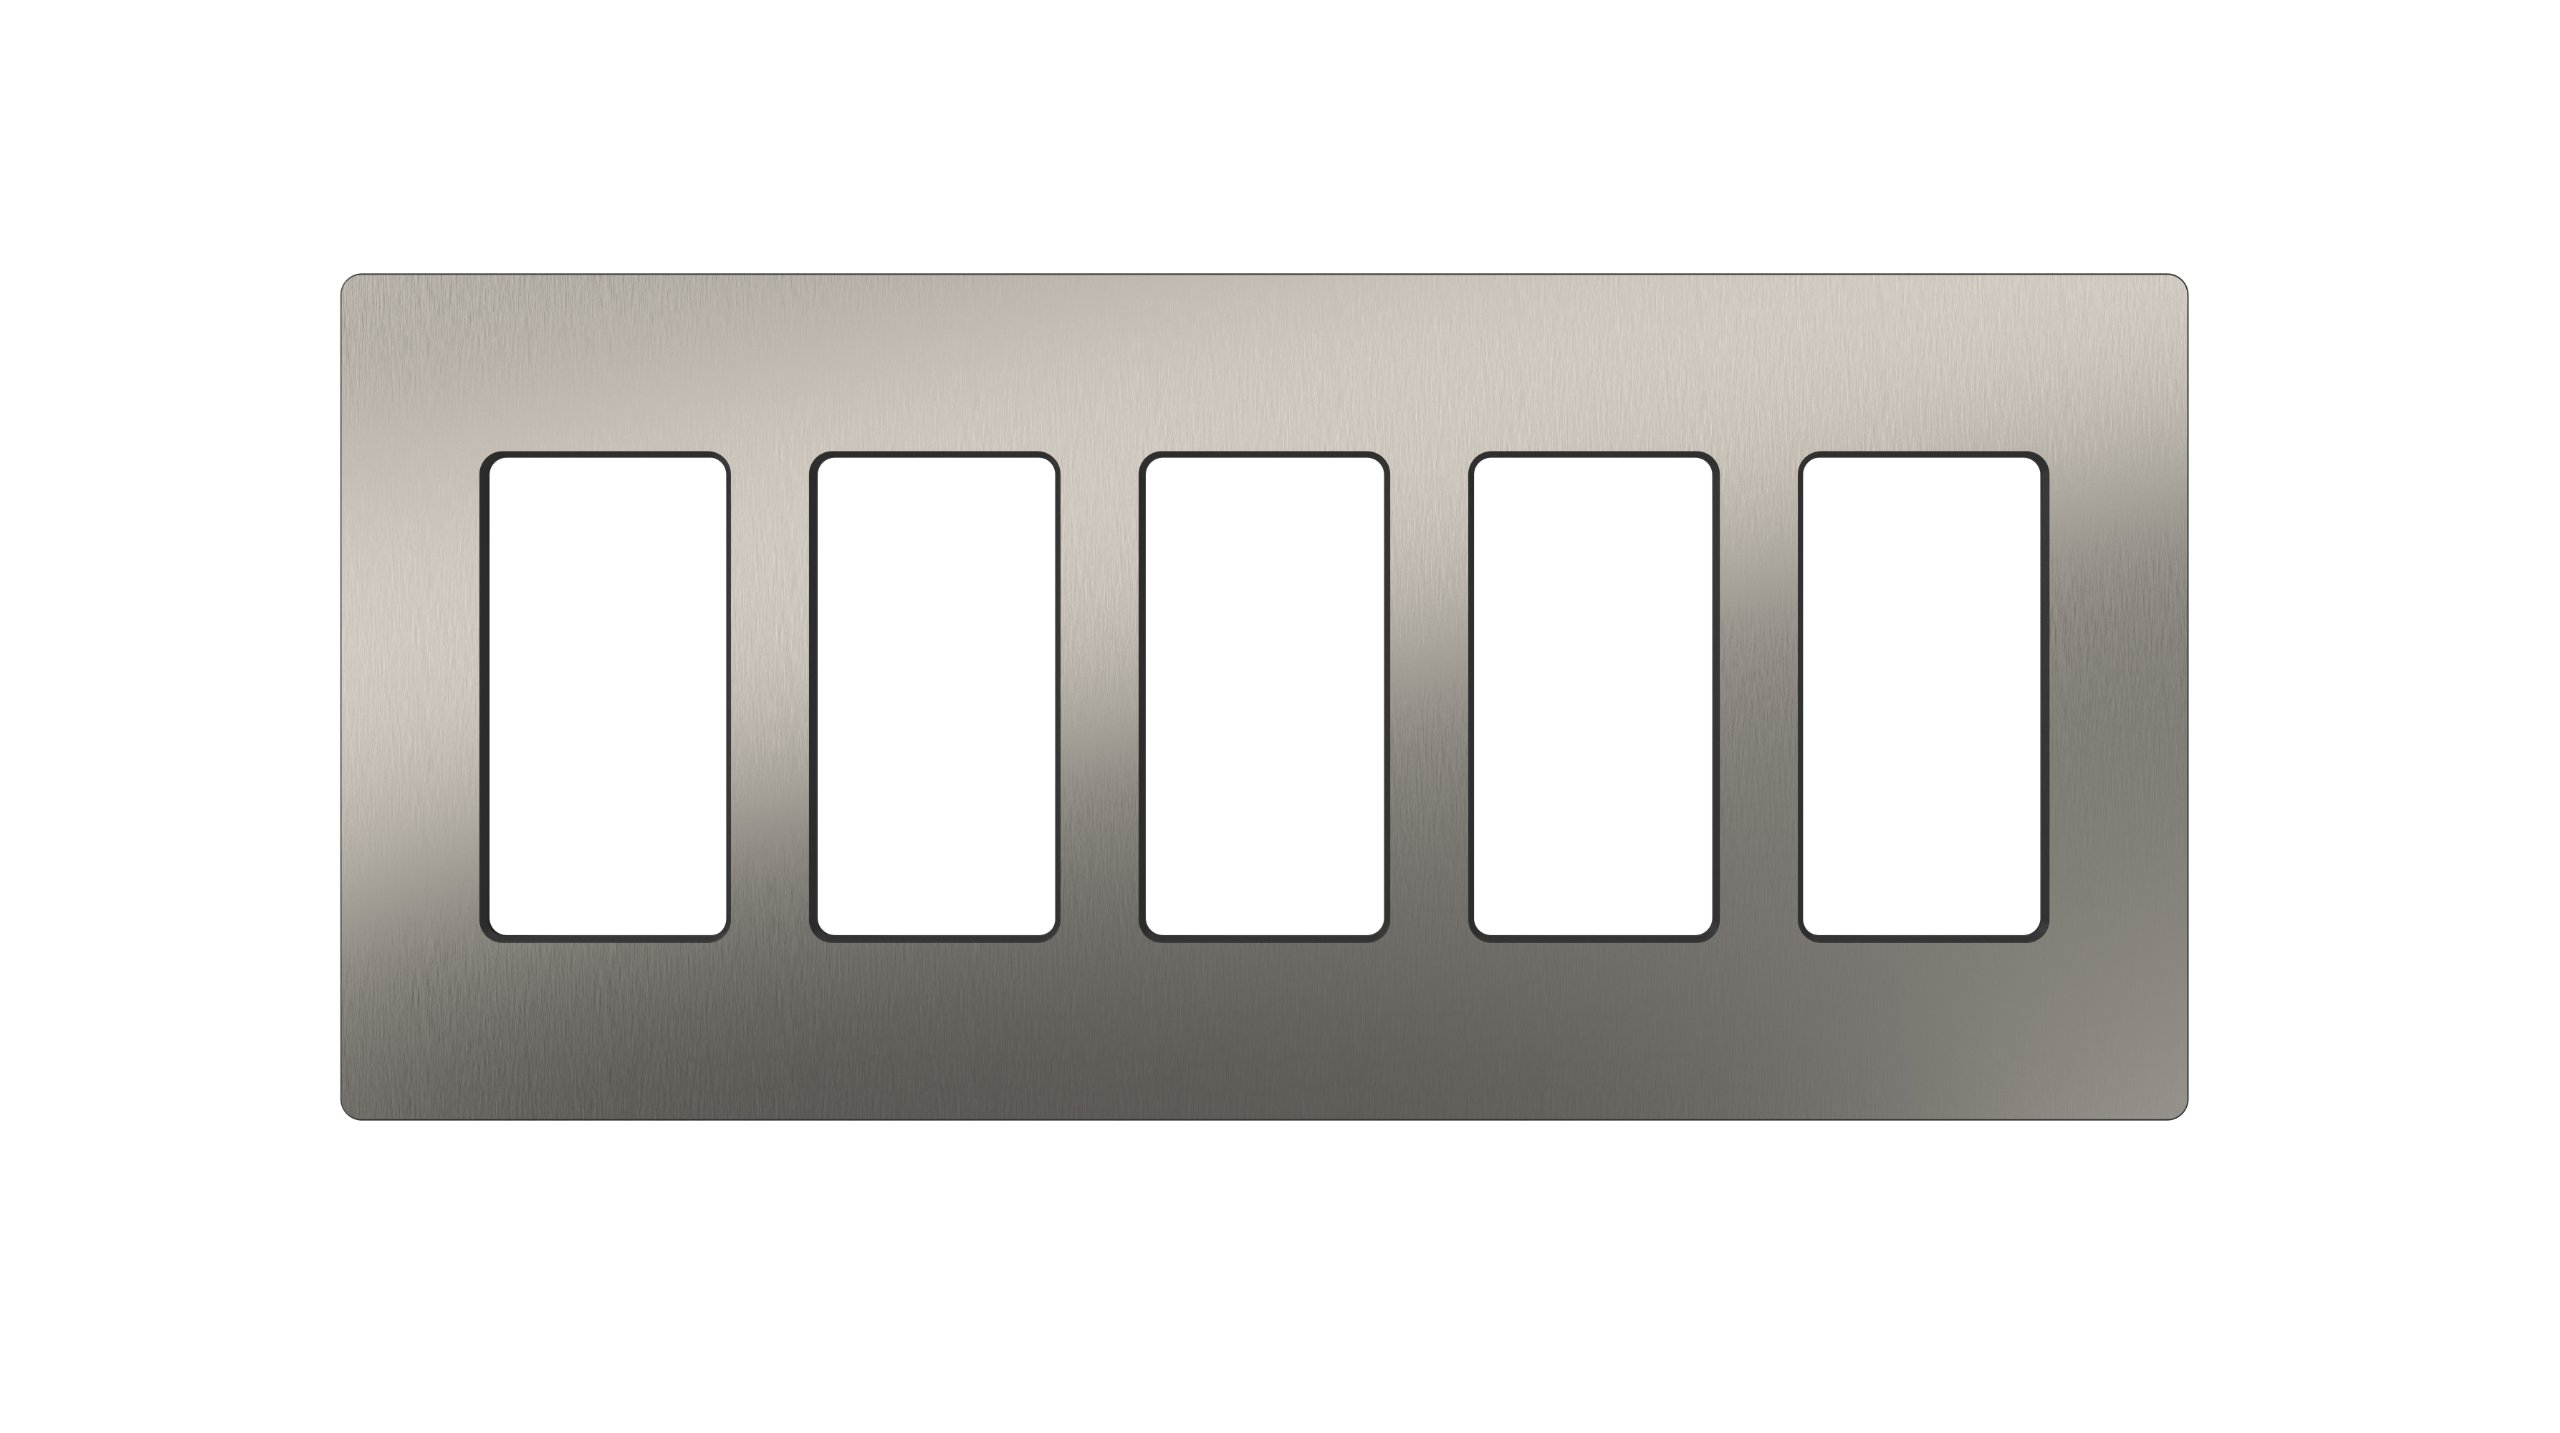 Lutron CW-5-SS Claro 5-Gang Wallplate, Stainless Steel by Lutron (Image #1)